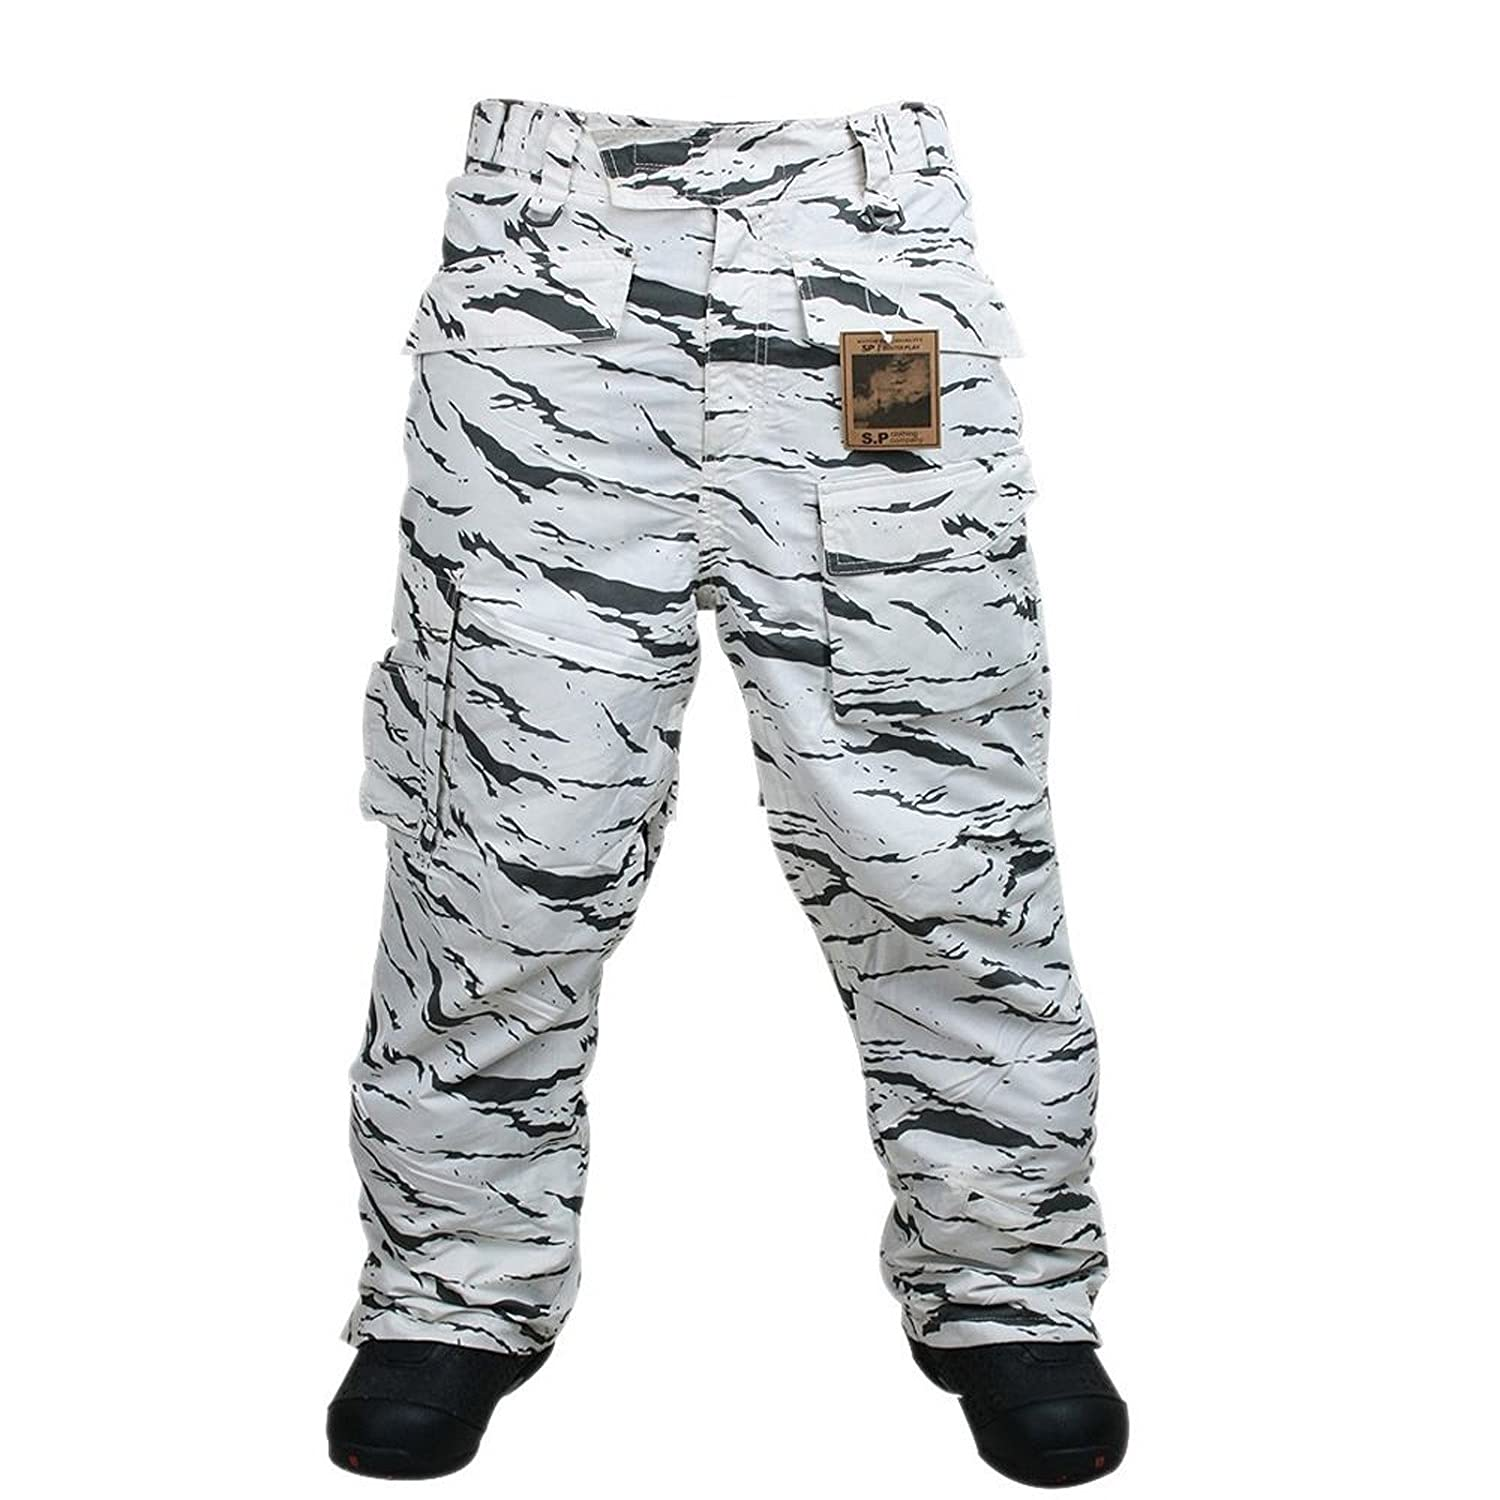 Southplay Mens Waterproof Ski-snowboard Military Pants Multi-colors White Camo Military)